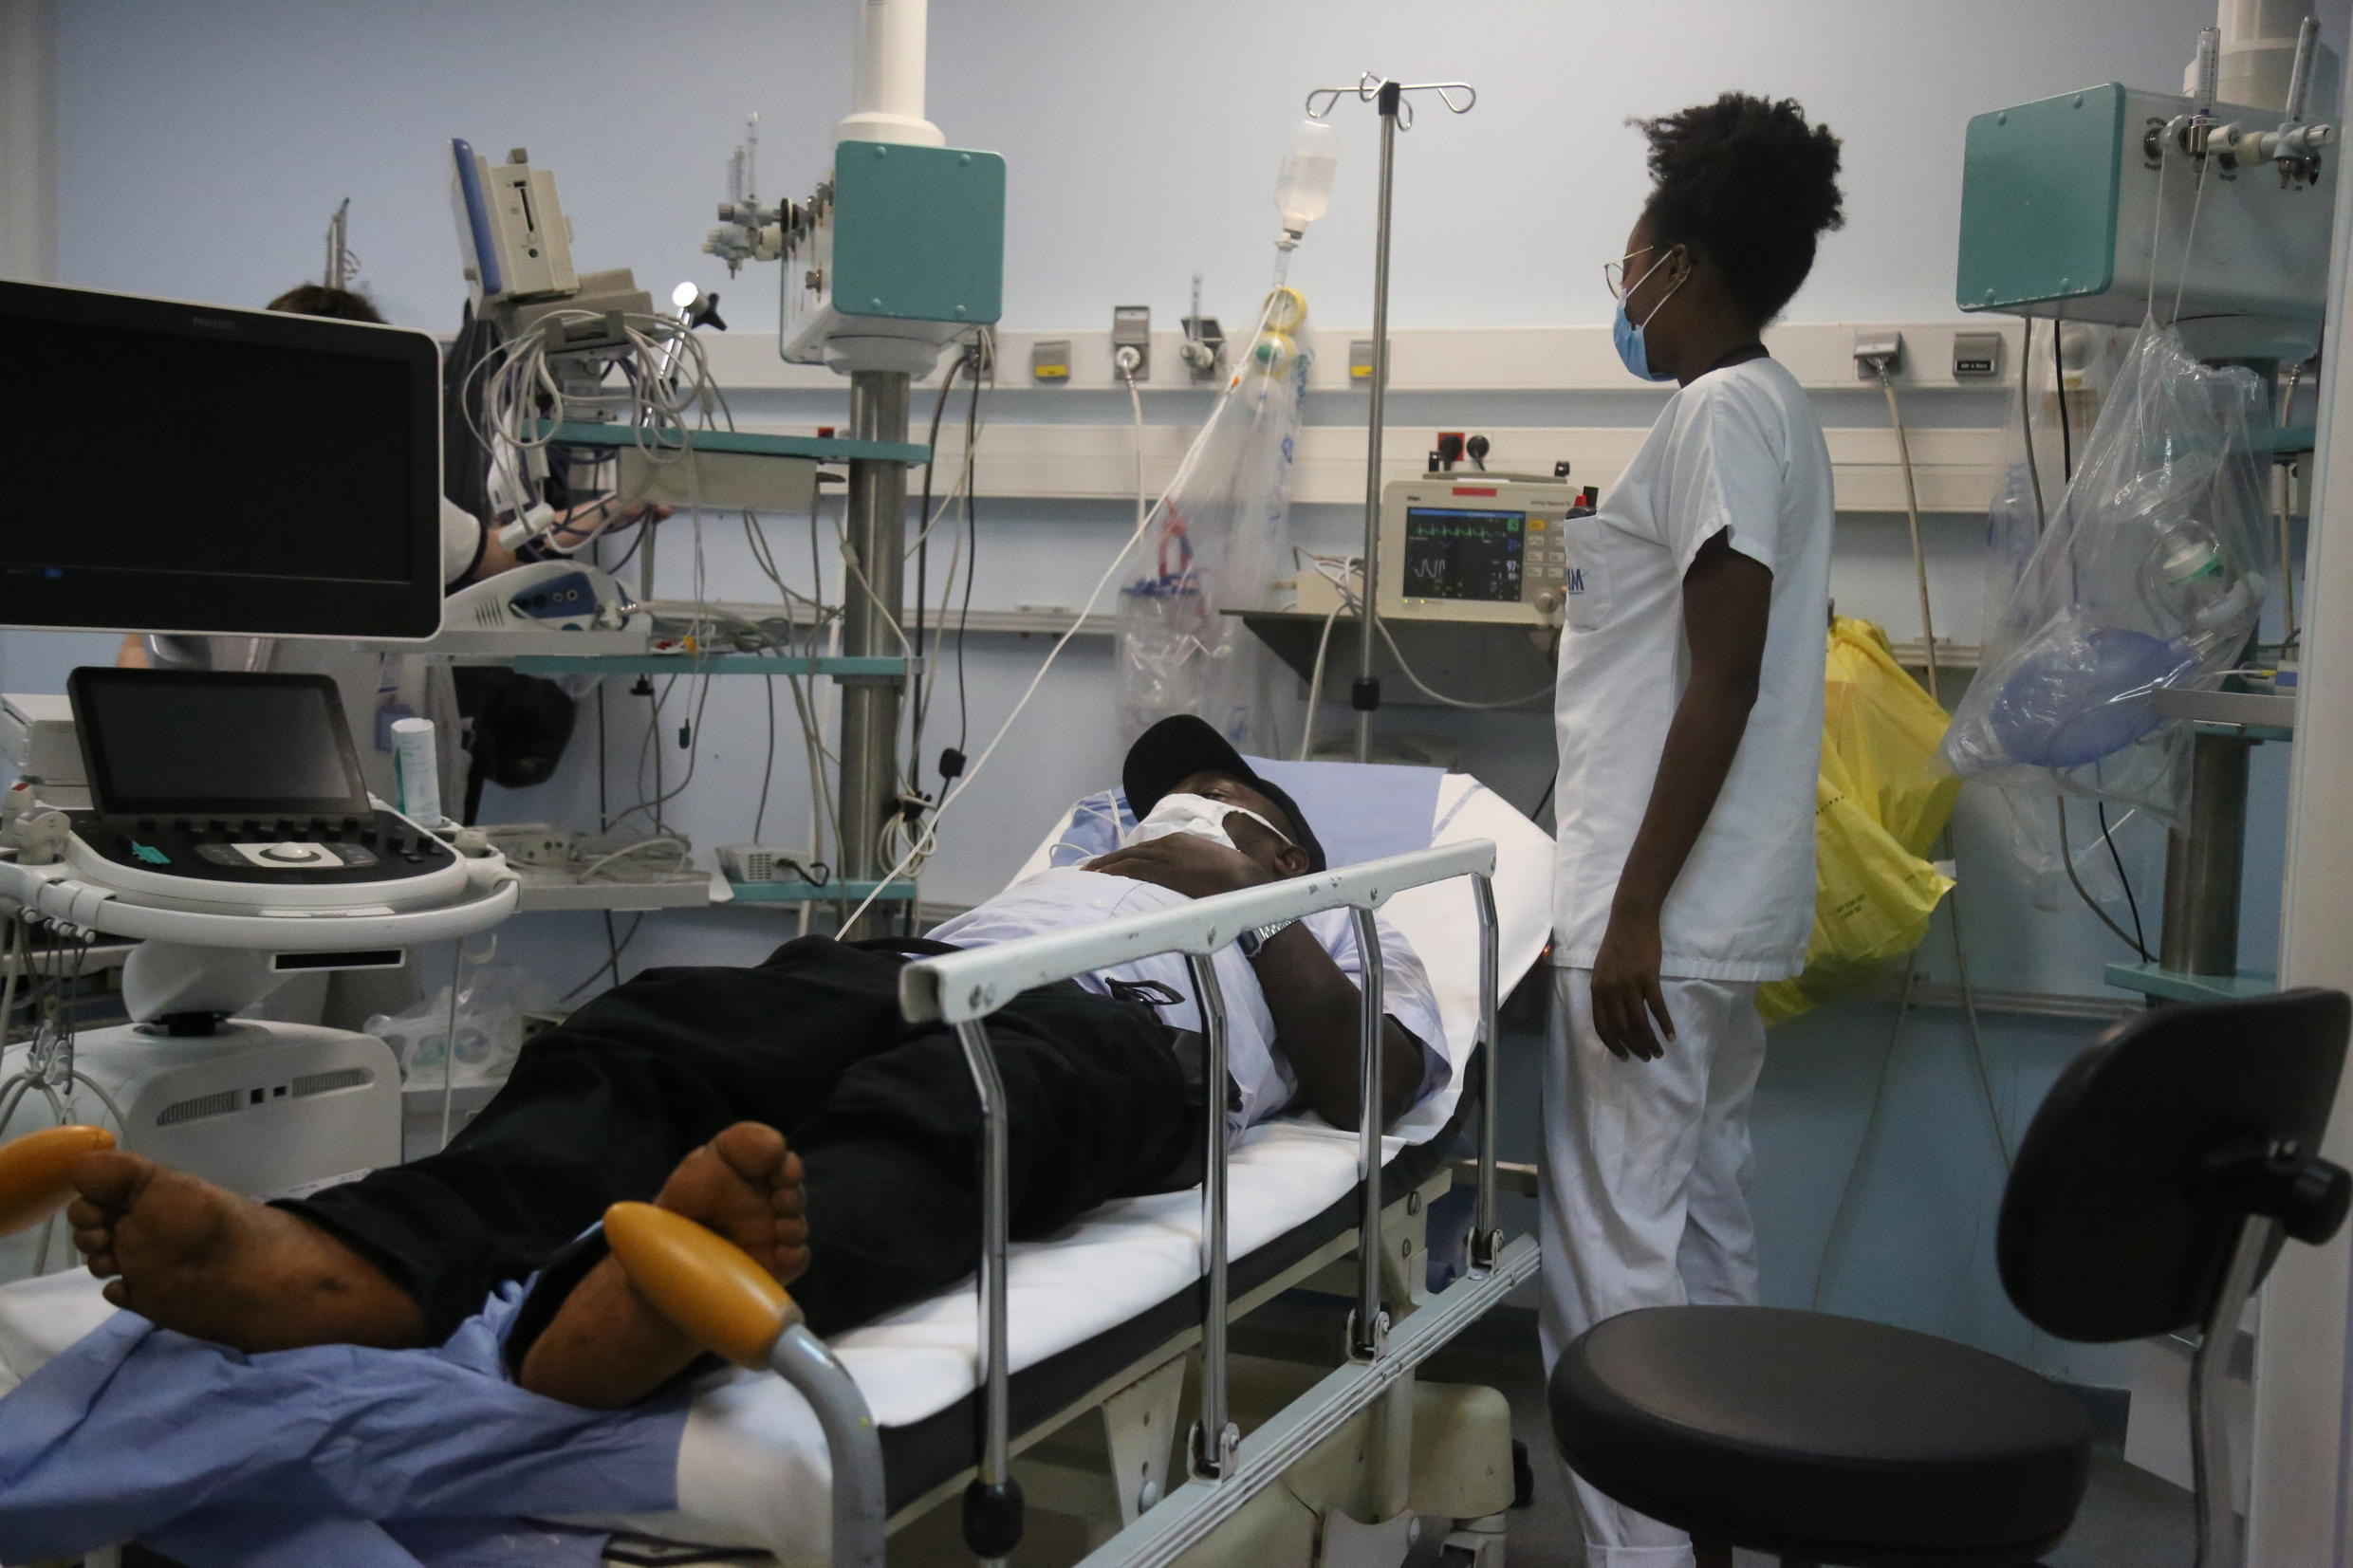 A patient is treated at the emergency room of the Centre Hospitalier de Mayotte (CHM) hospital on the island of Mayotte on May 21 2020.